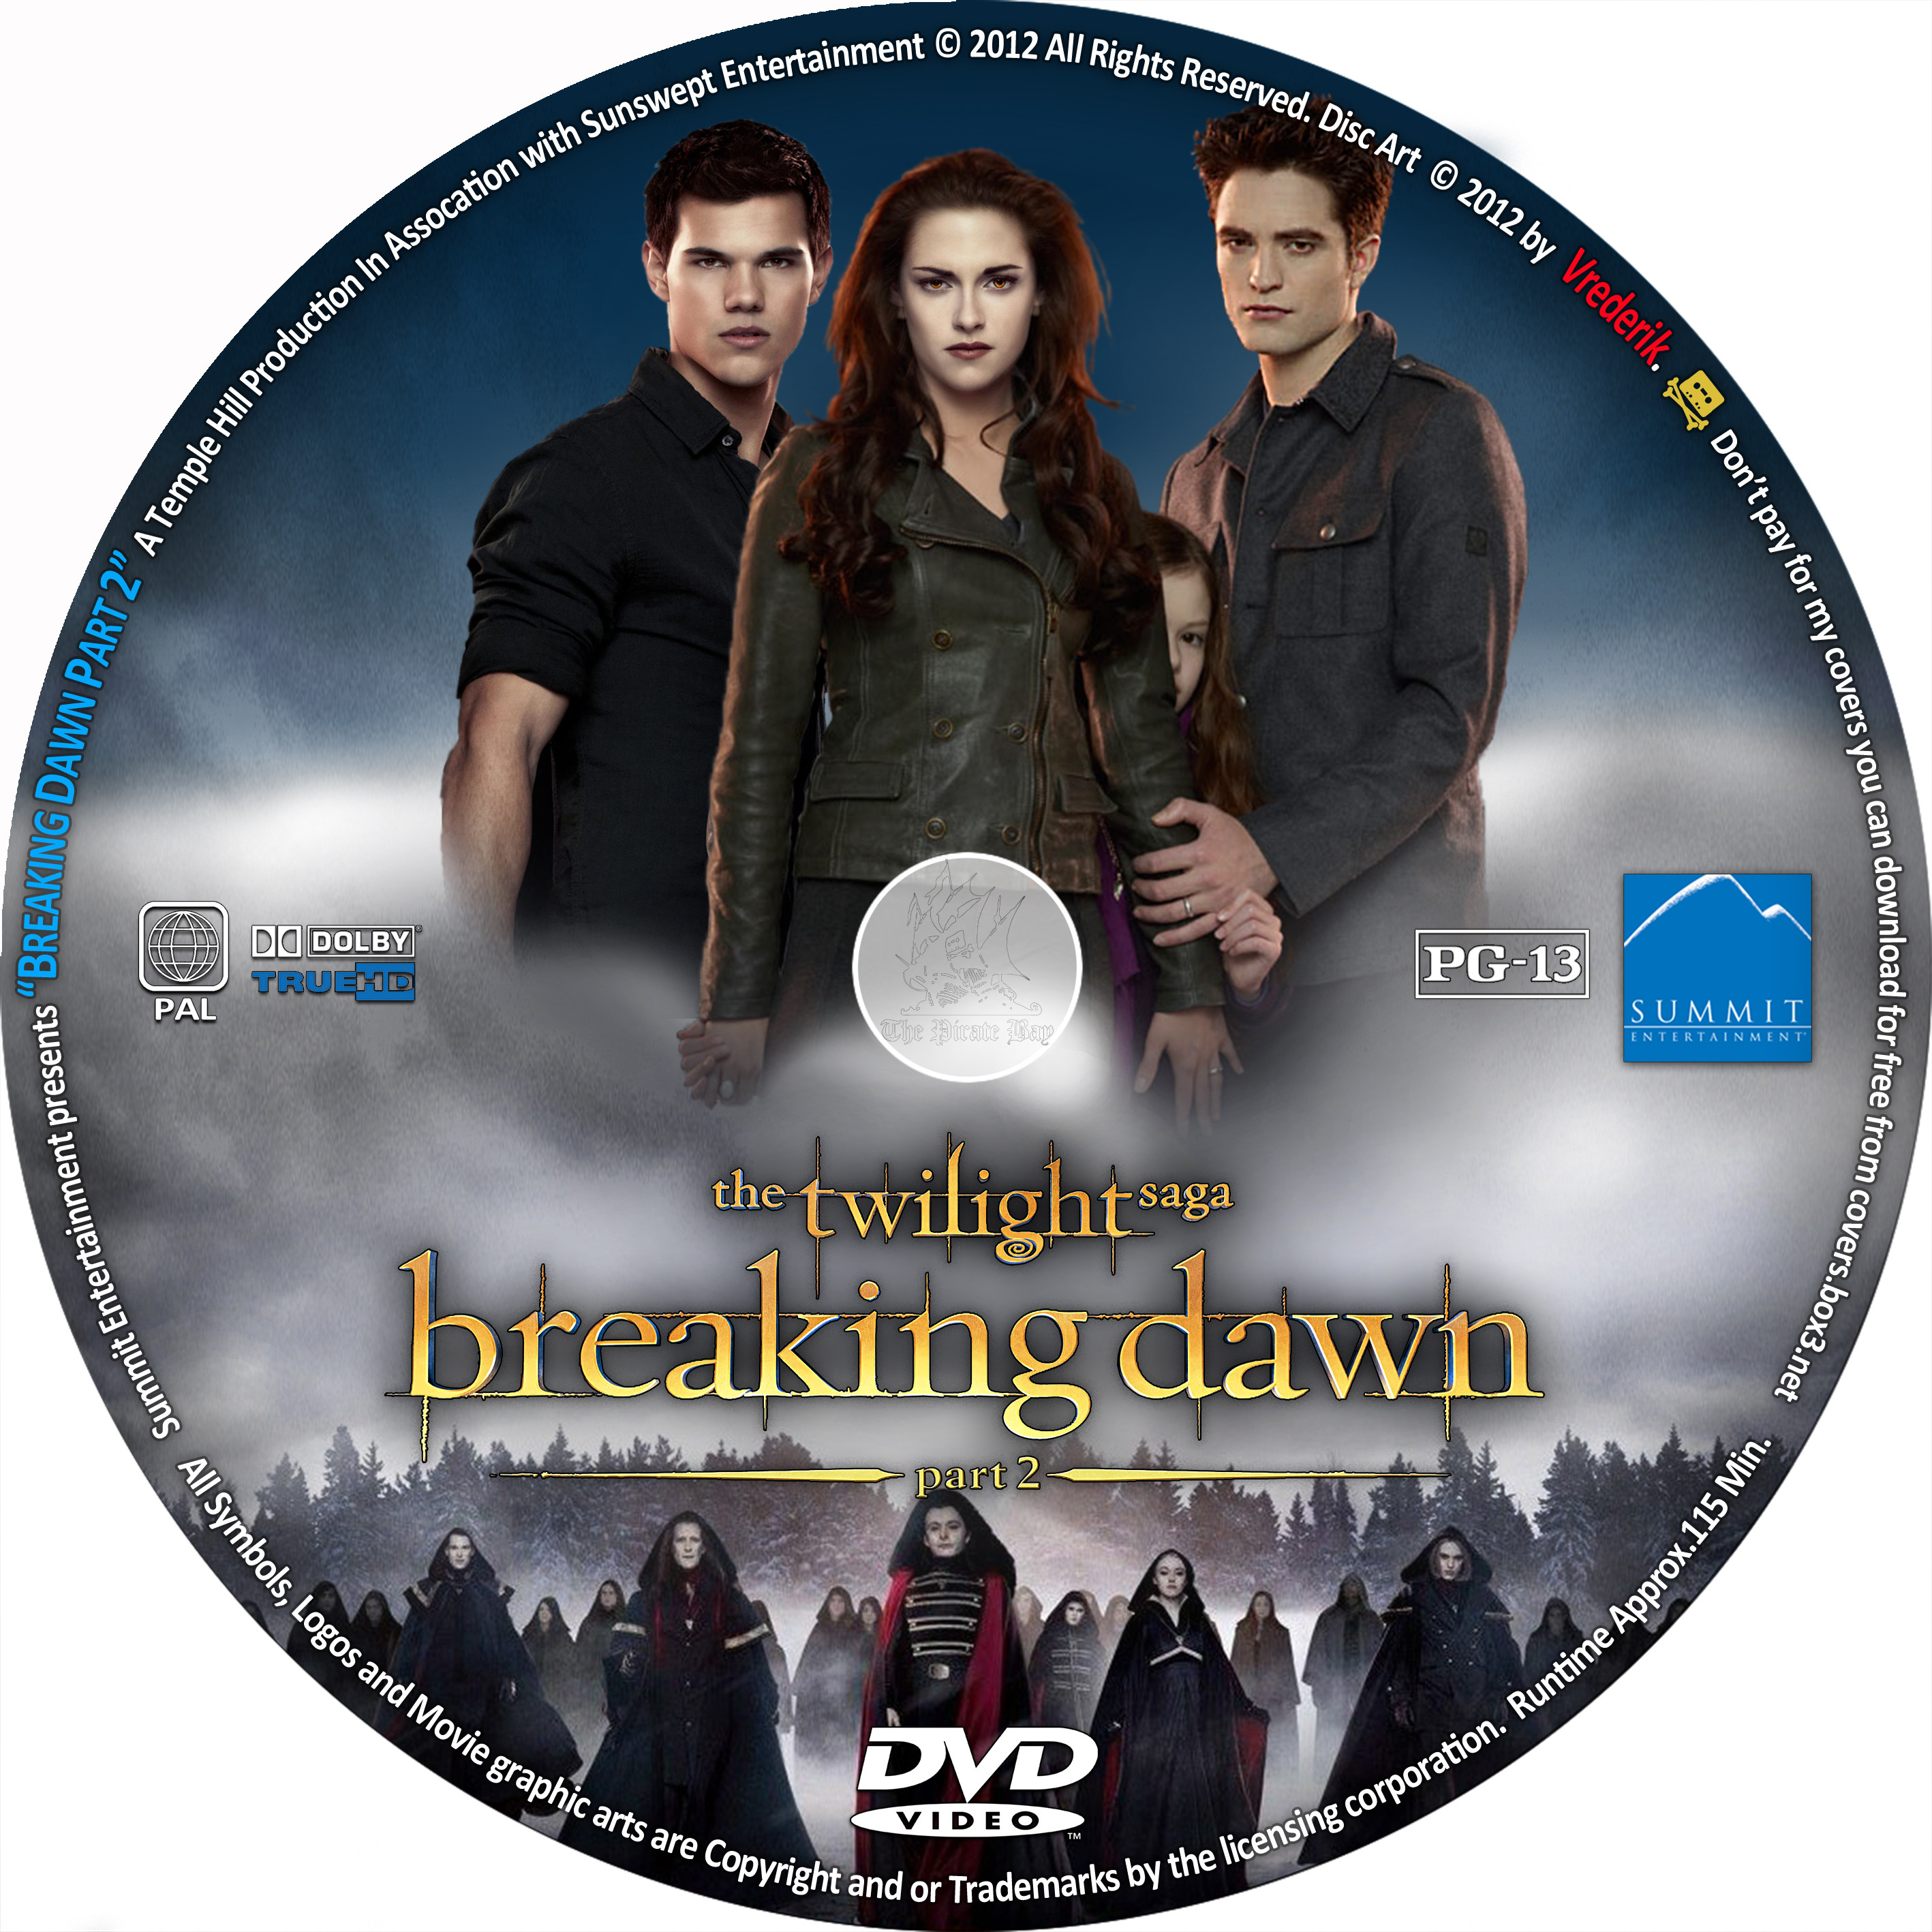 Coversx The Twilight Saga Breaking Dawn Part 2 High